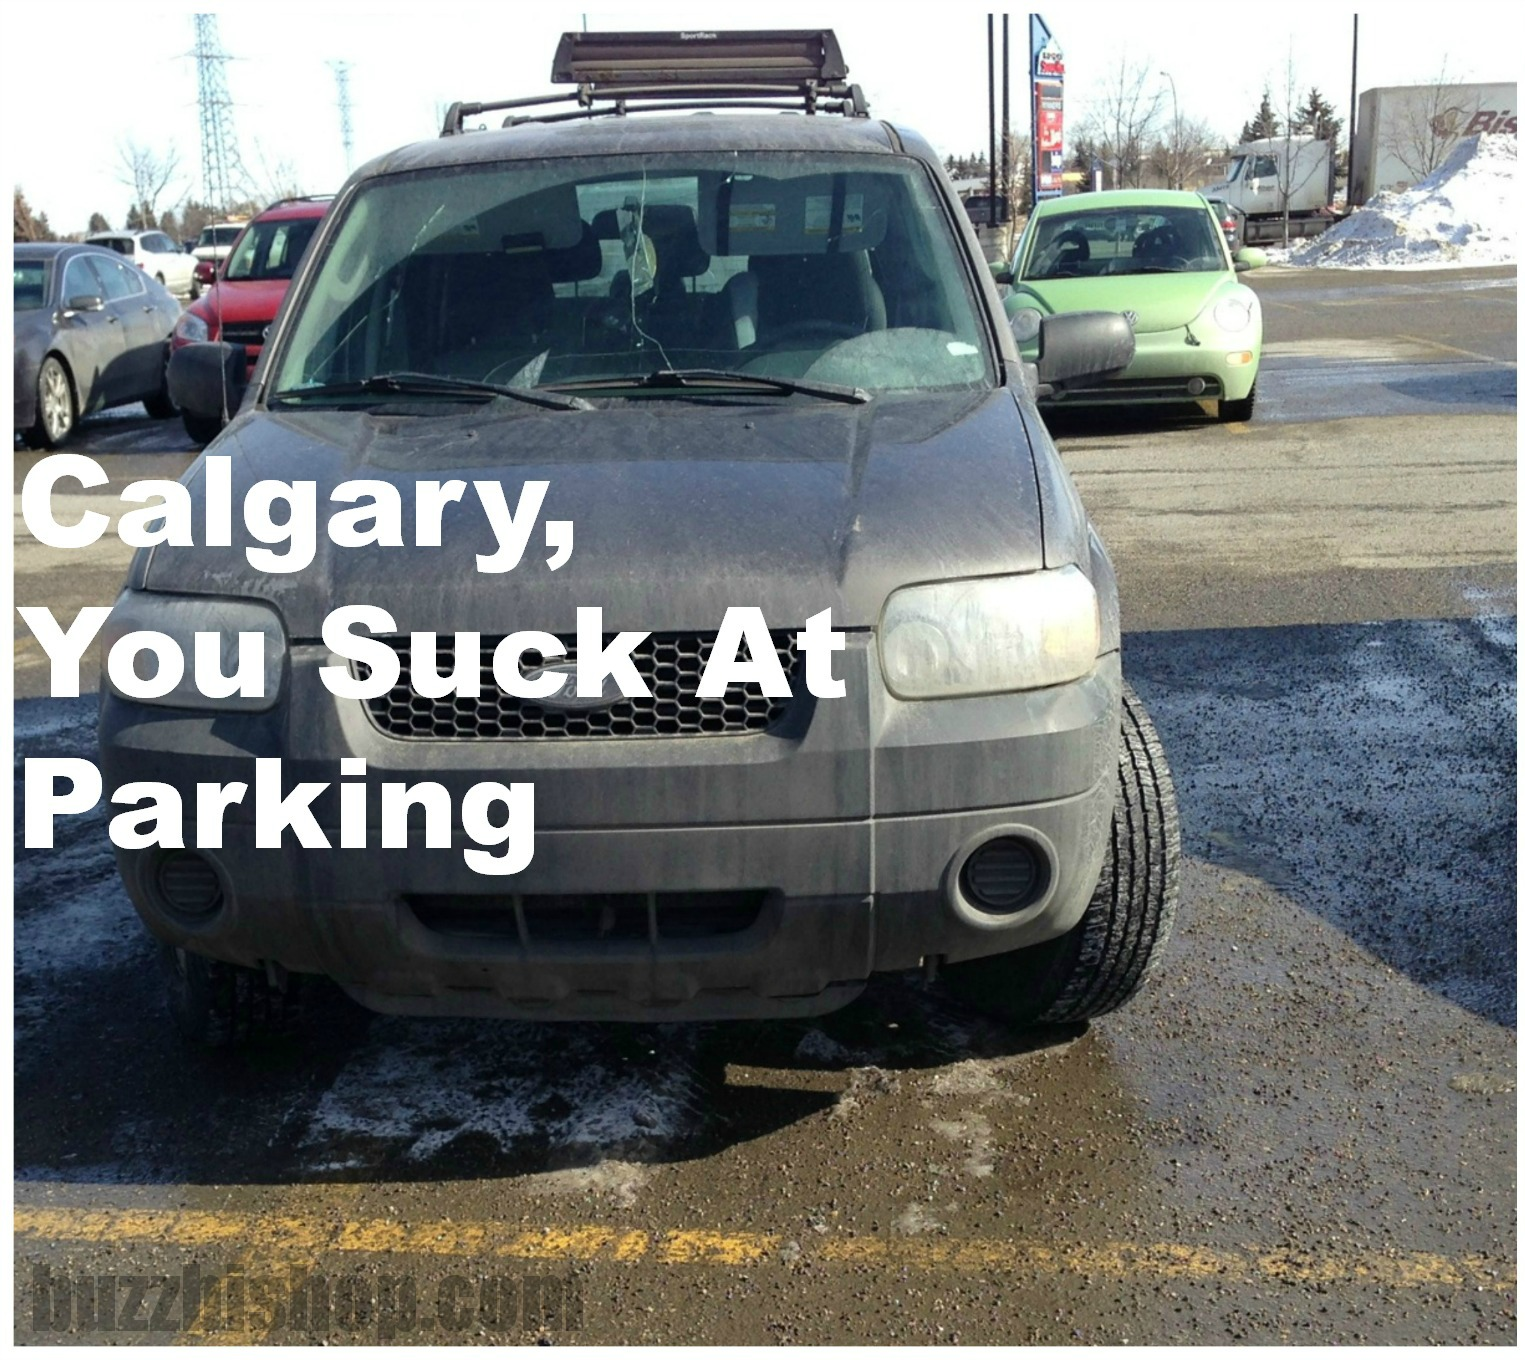 calgary you suck at parking